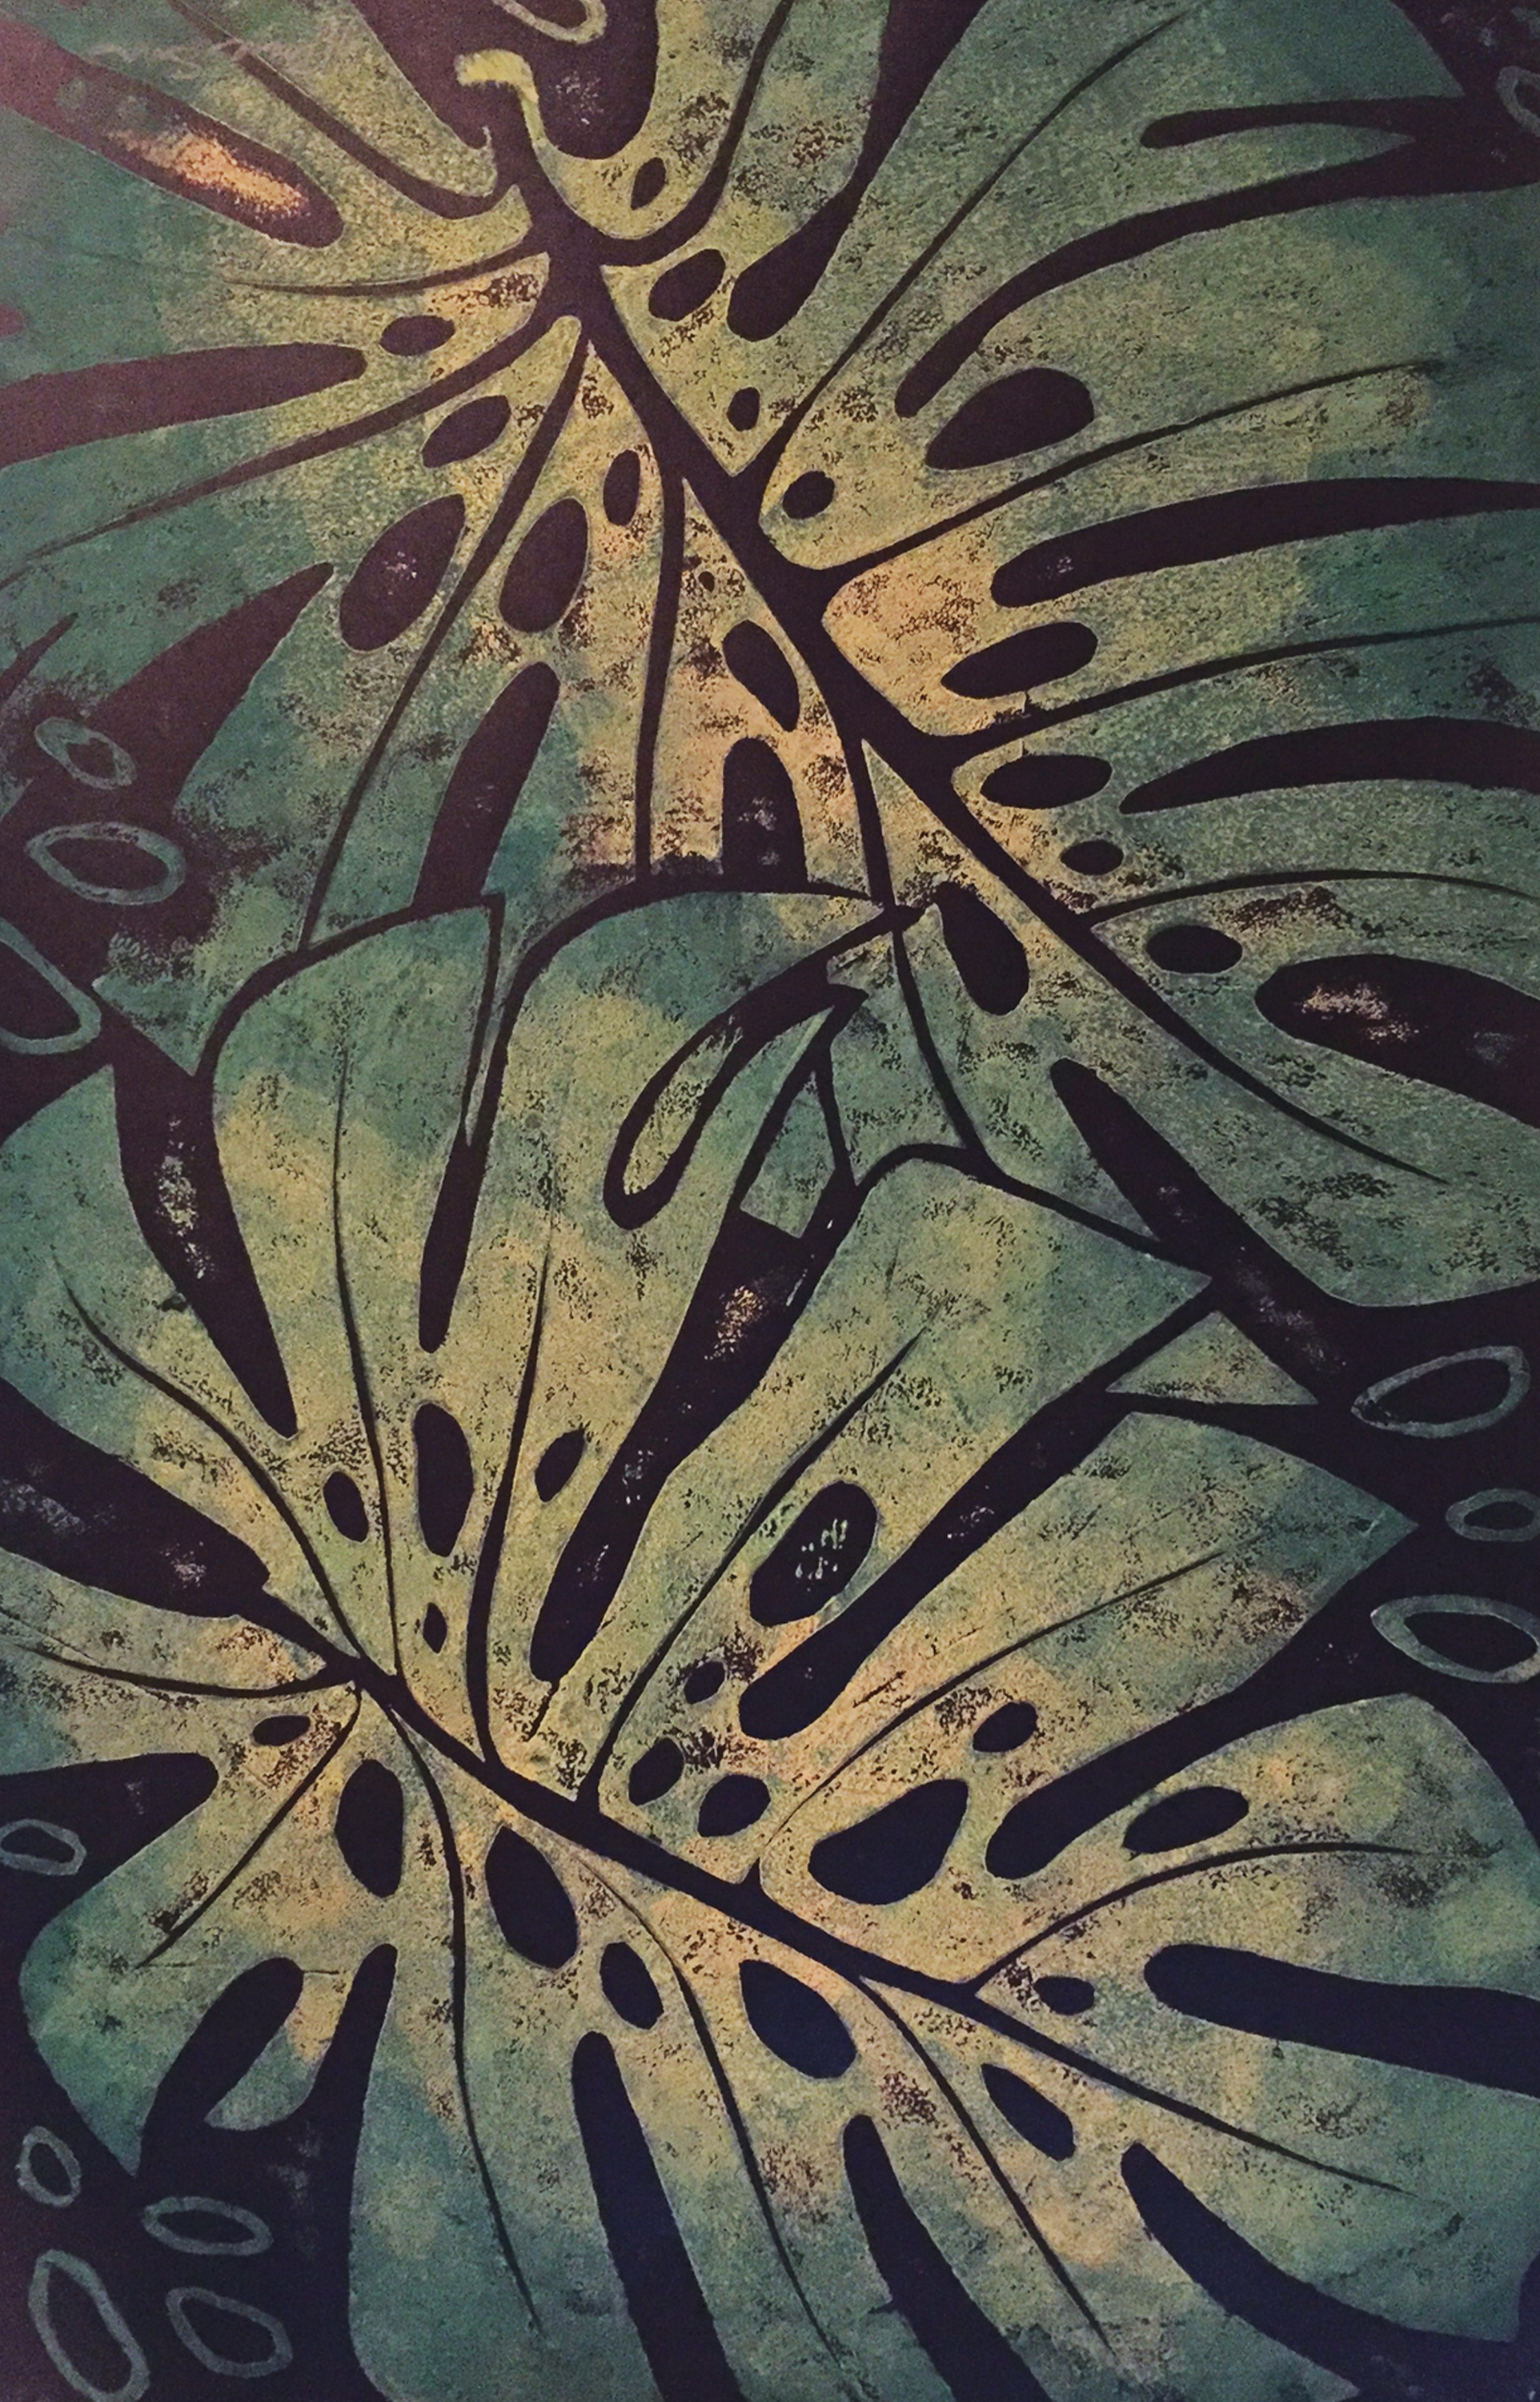 Monstera - Hand Rubbed Collograph